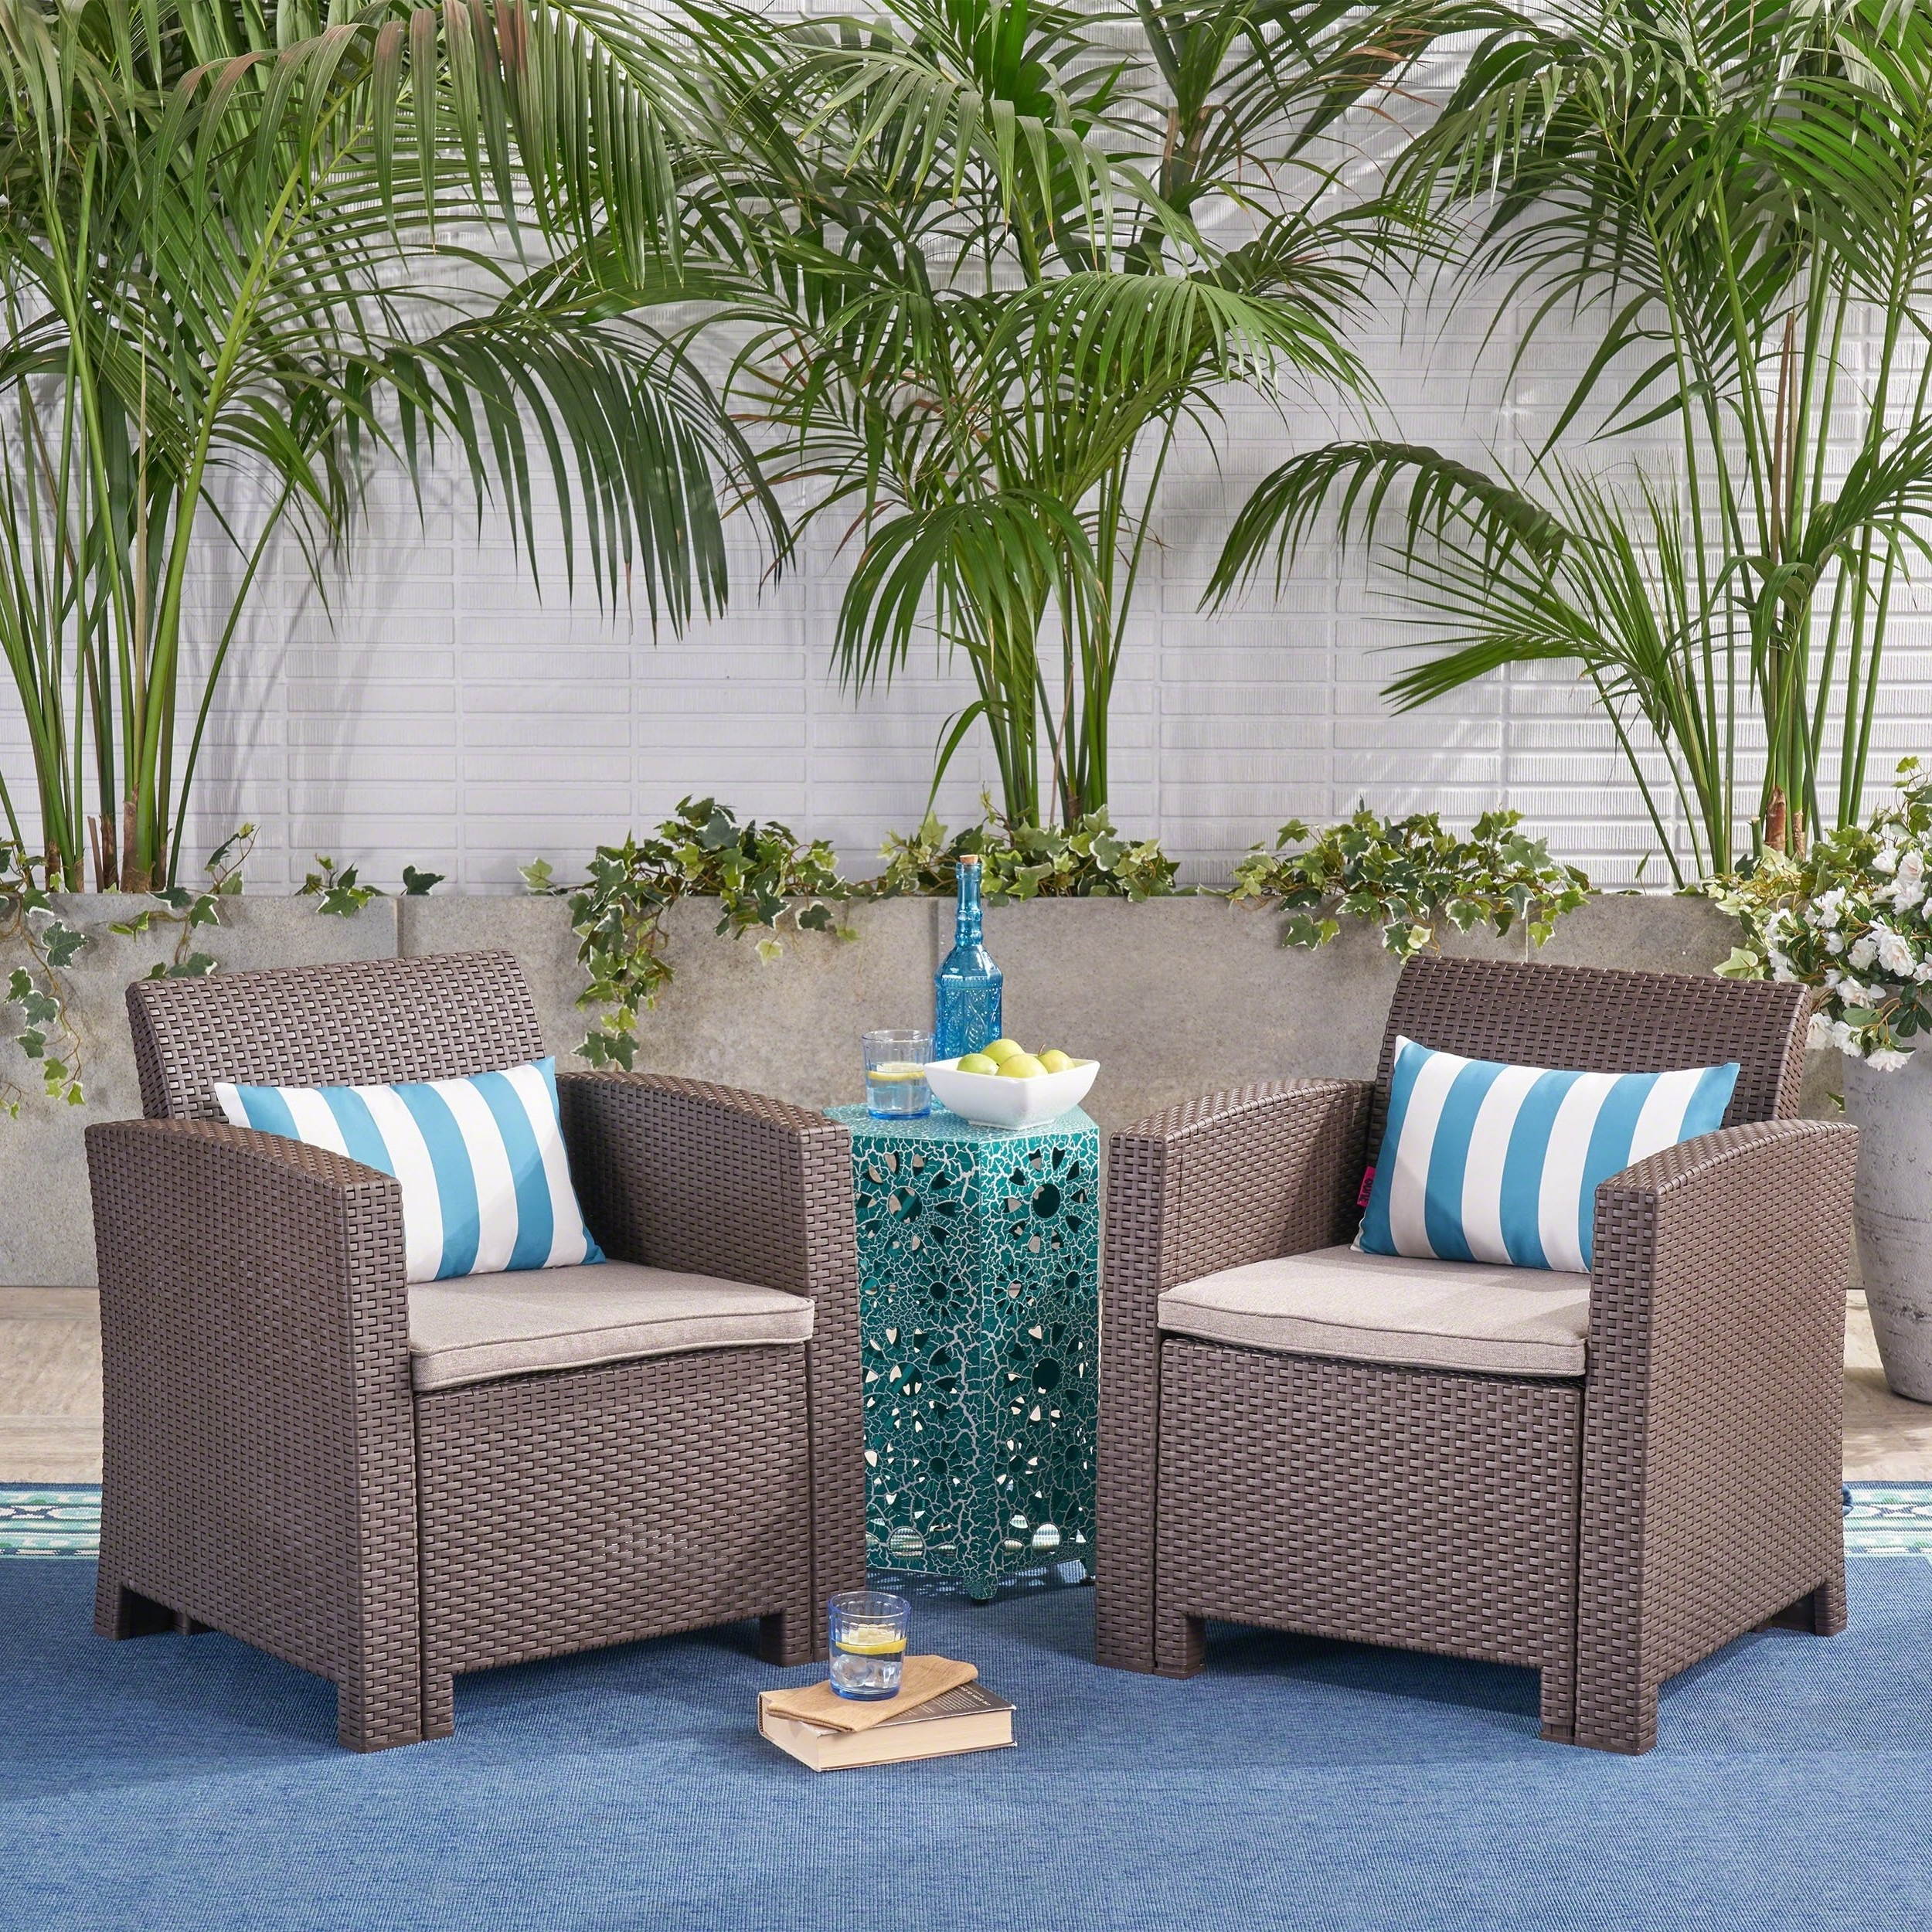 Well Liked Buy 2 Outdoor Sofas, Chairs & Sectionals Online At Overstock With Regard To Alder Grande Ii Swivel Chairs (Gallery 16 of 20)